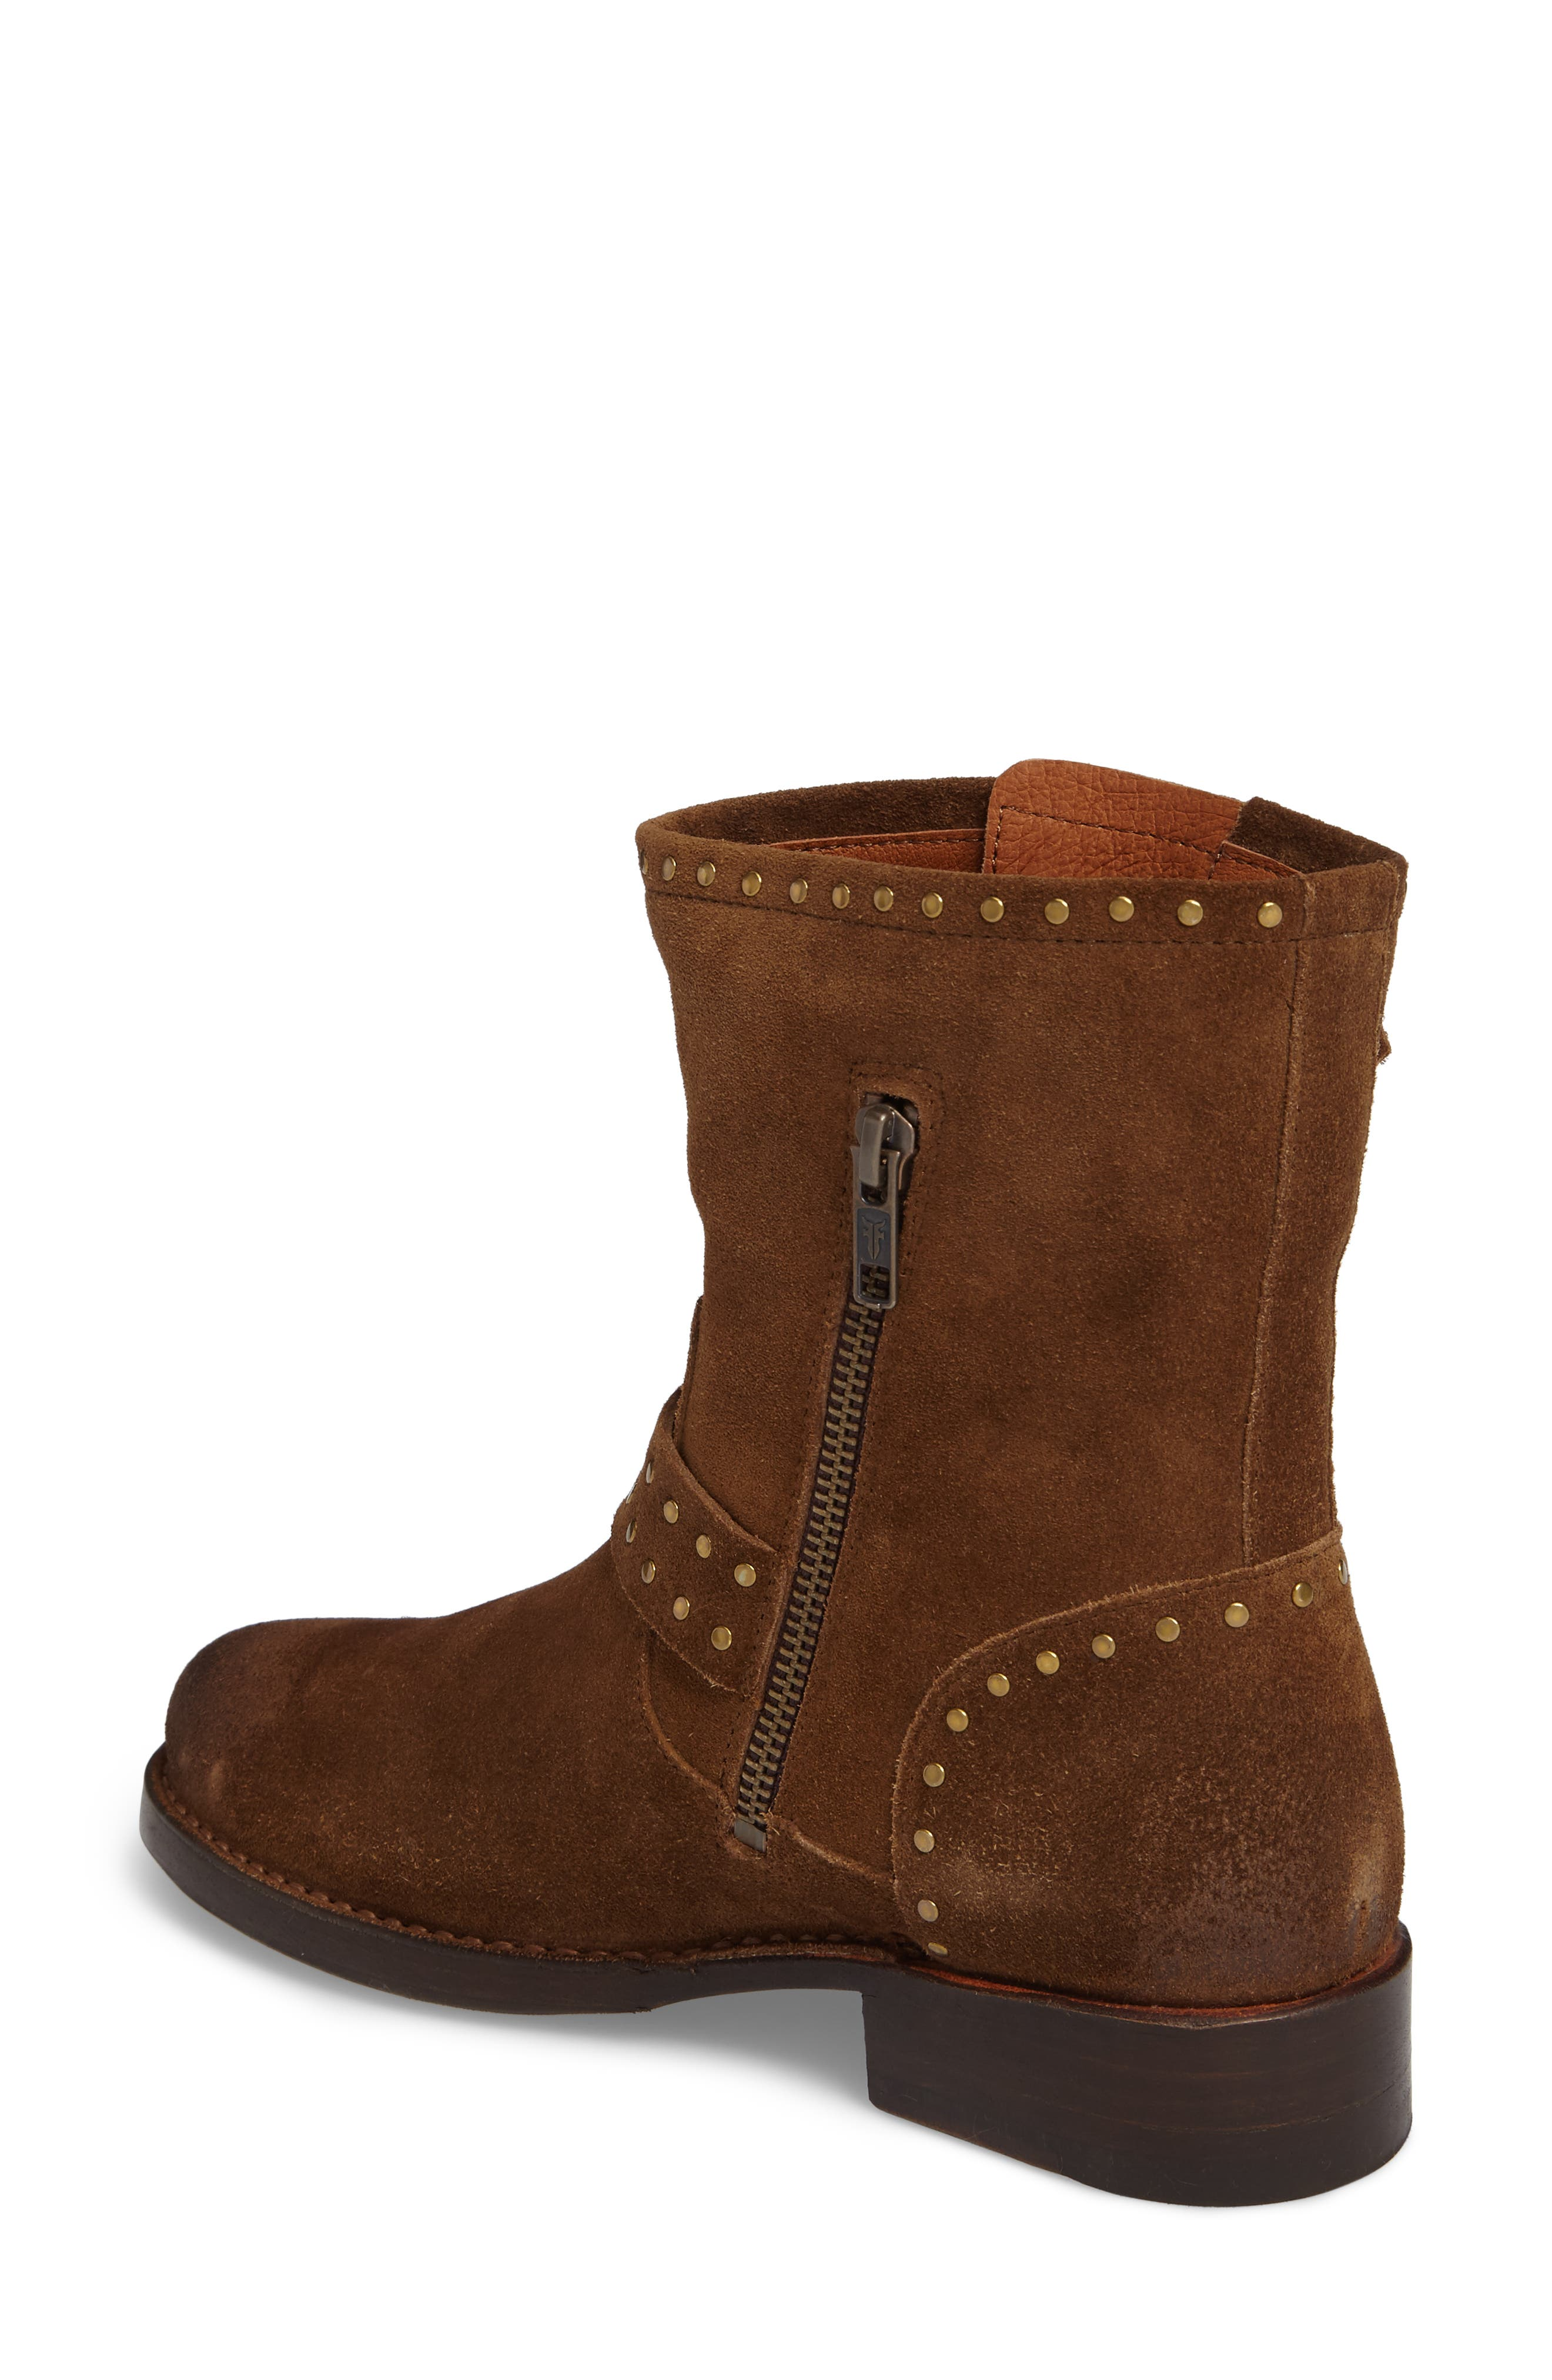 Vicky Stud Engineer Boot,                             Alternate thumbnail 2, color,                             Chestnut Suede